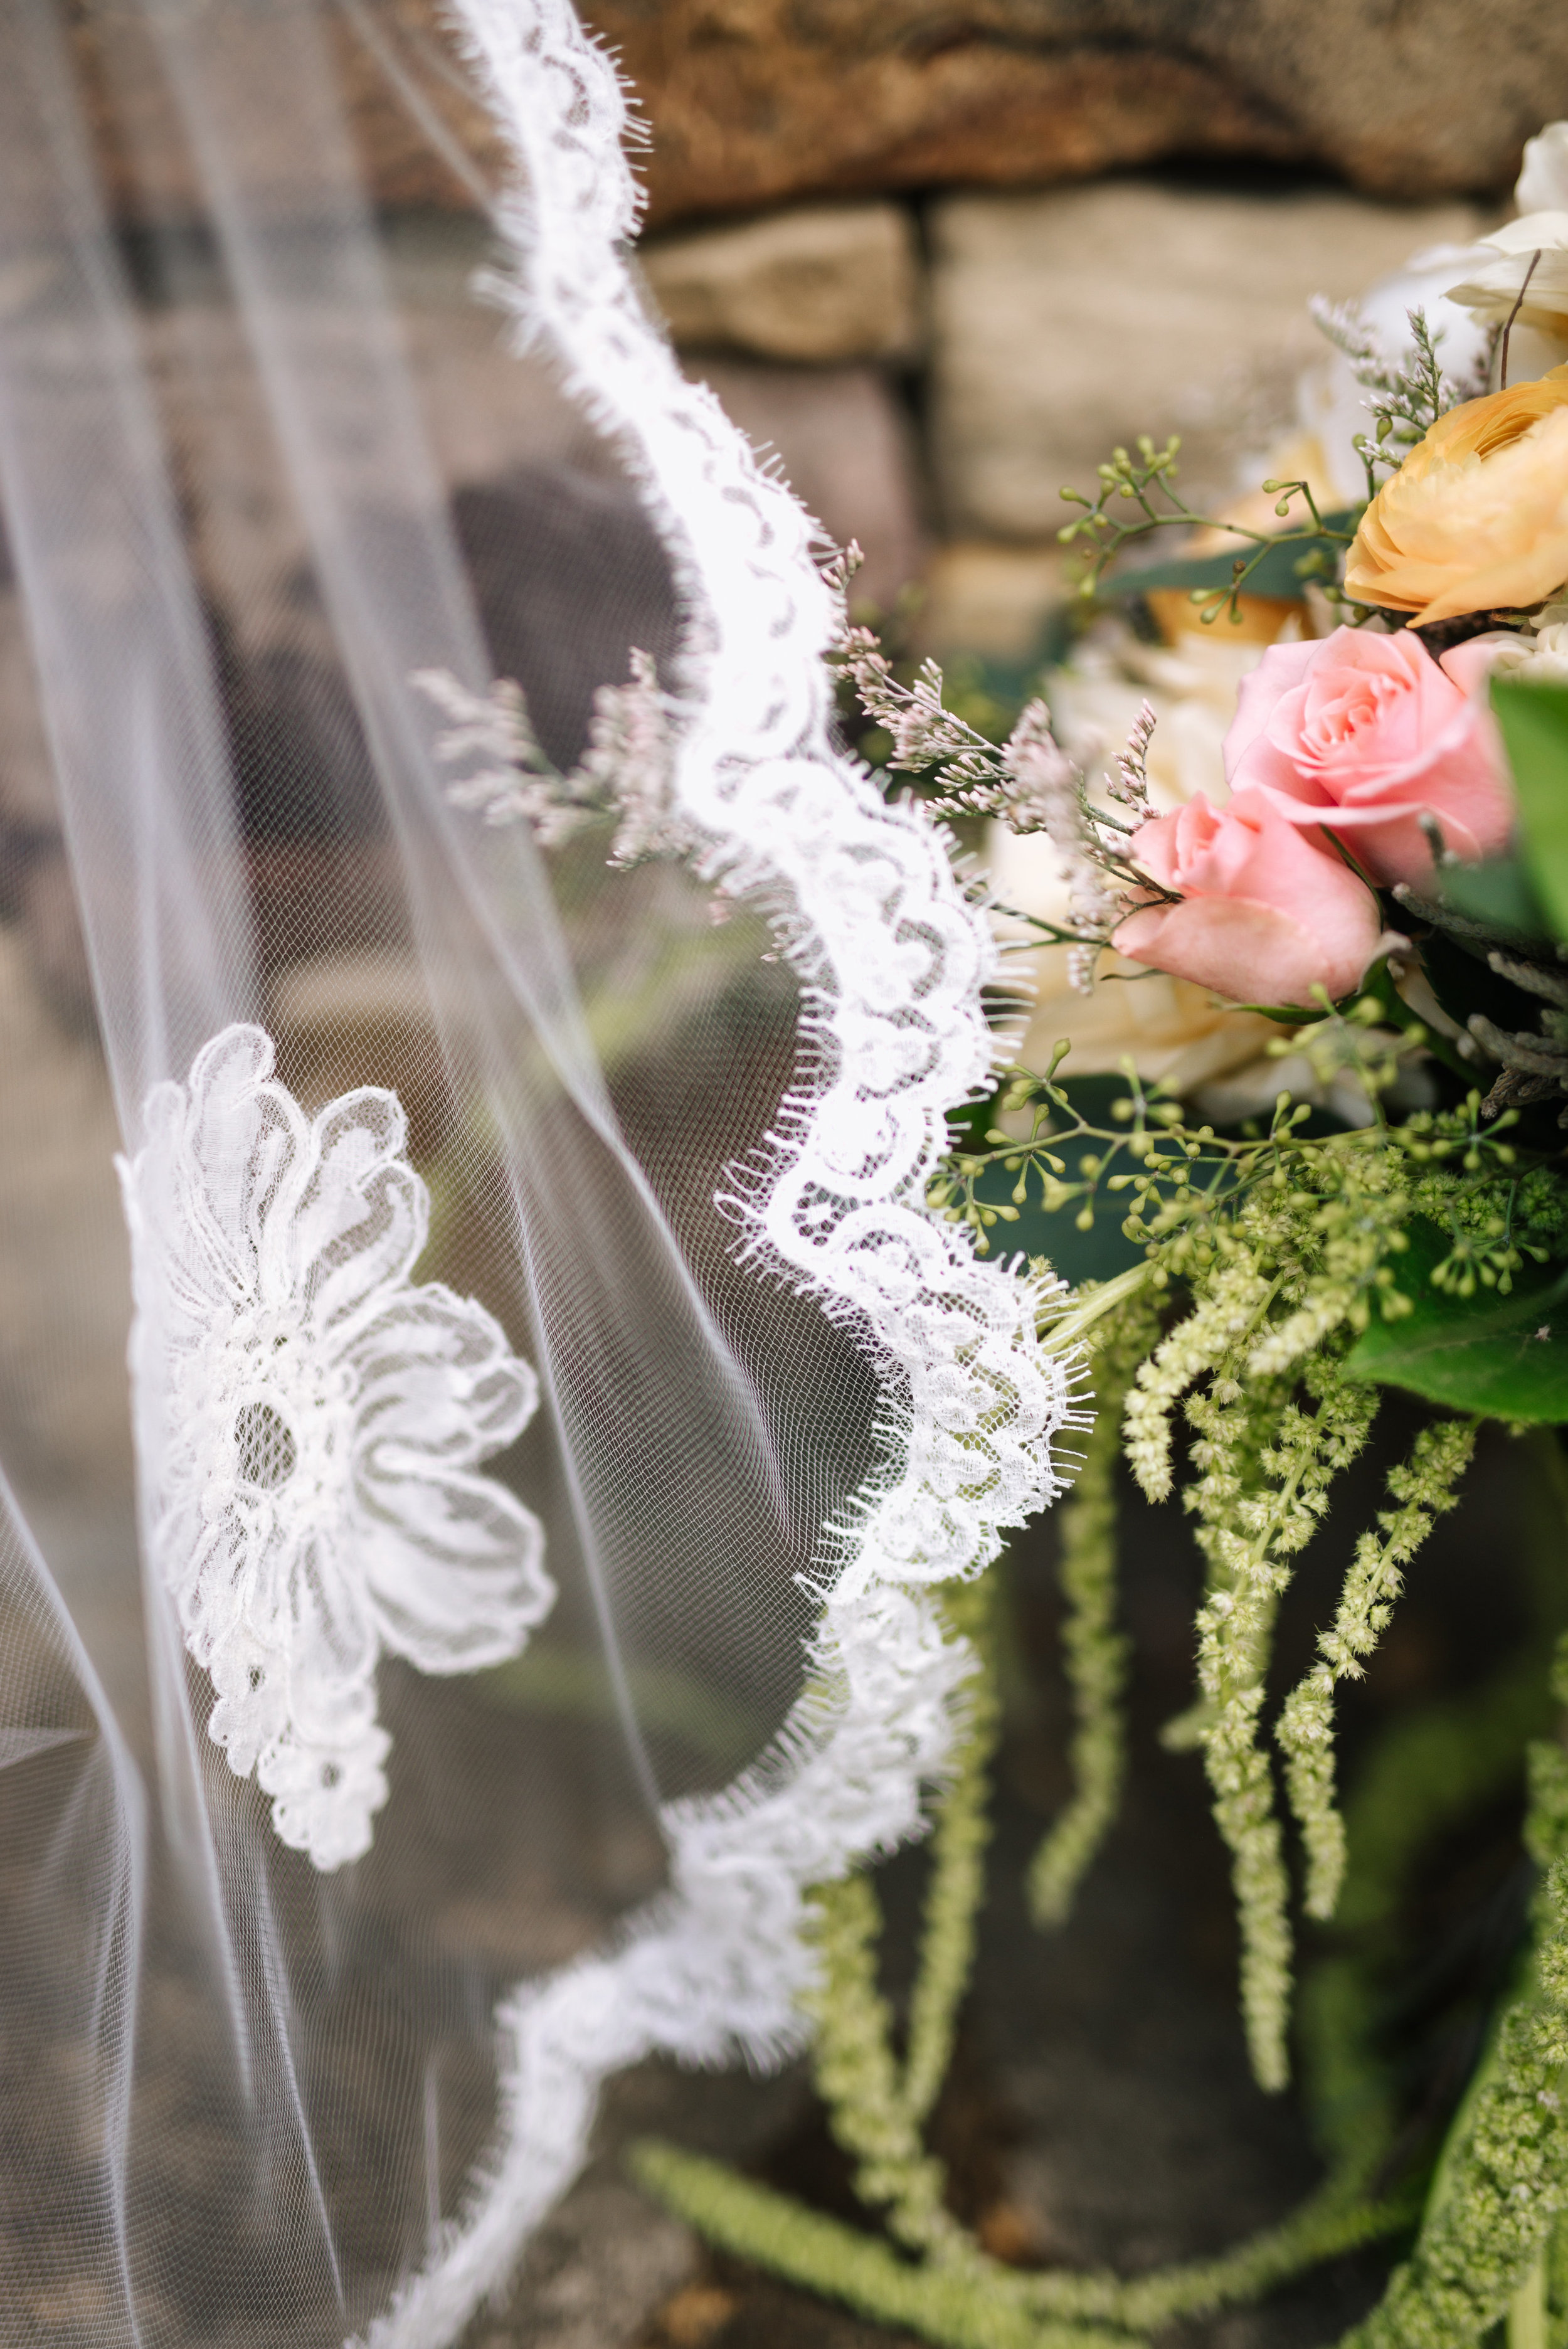 mcclure-boerne-wedding-upclose-veil-bouquet-sojourn-art-and-ink.jpg